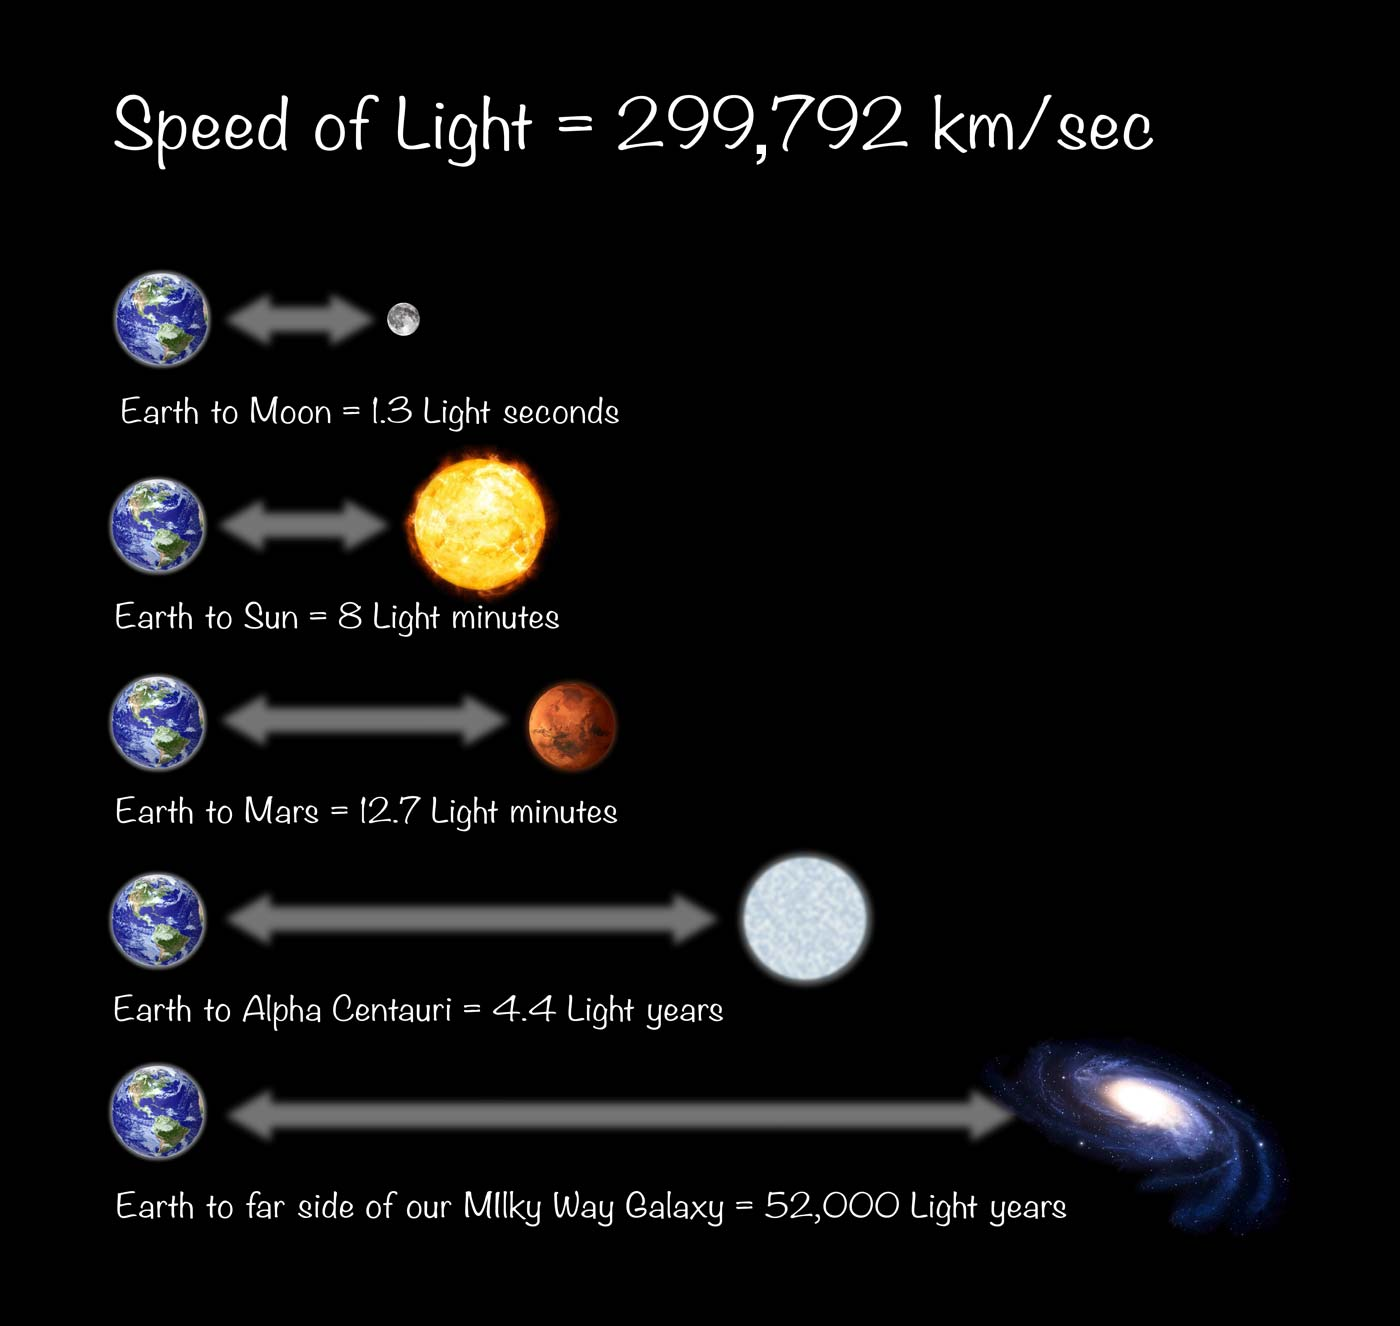 how far is a light year?